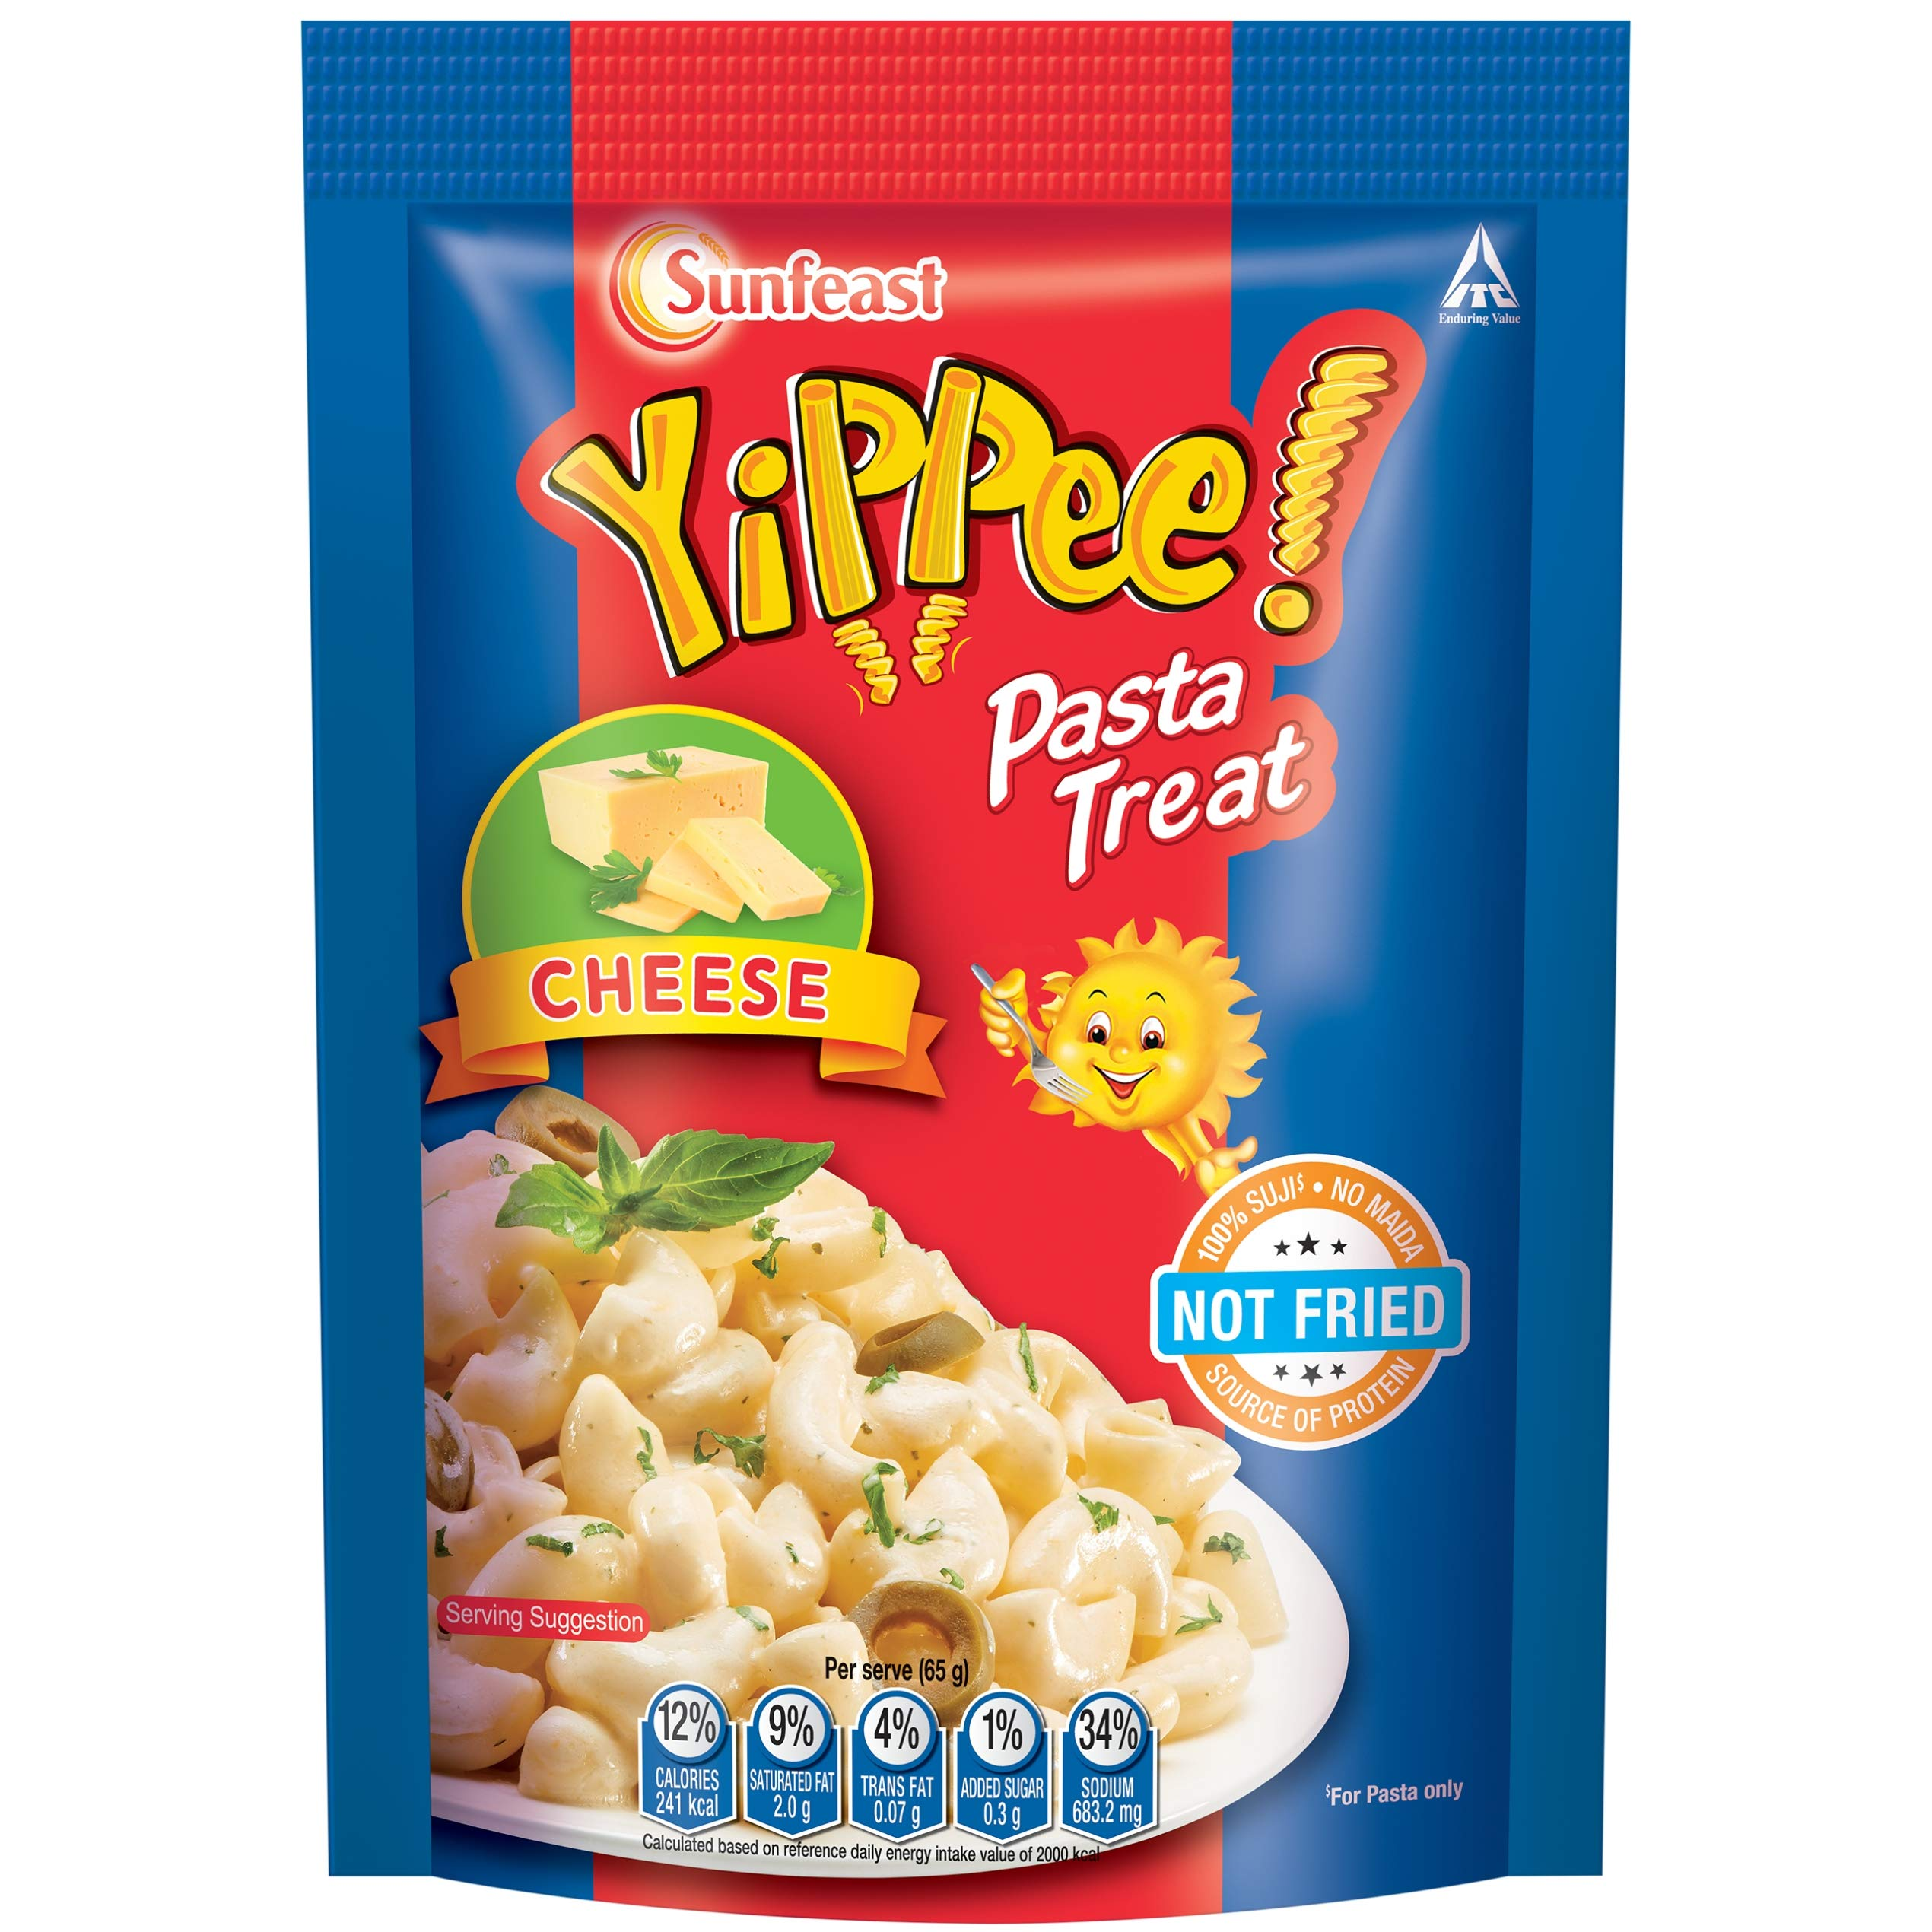 Sunfeast YiPPee! Pasta Treat | Cheesy and Soft Suji, Rawa Pasta | Cheese | 65g pack